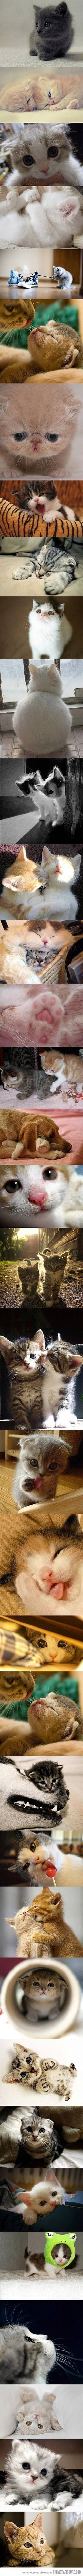 The cutest compilation you'll see today…